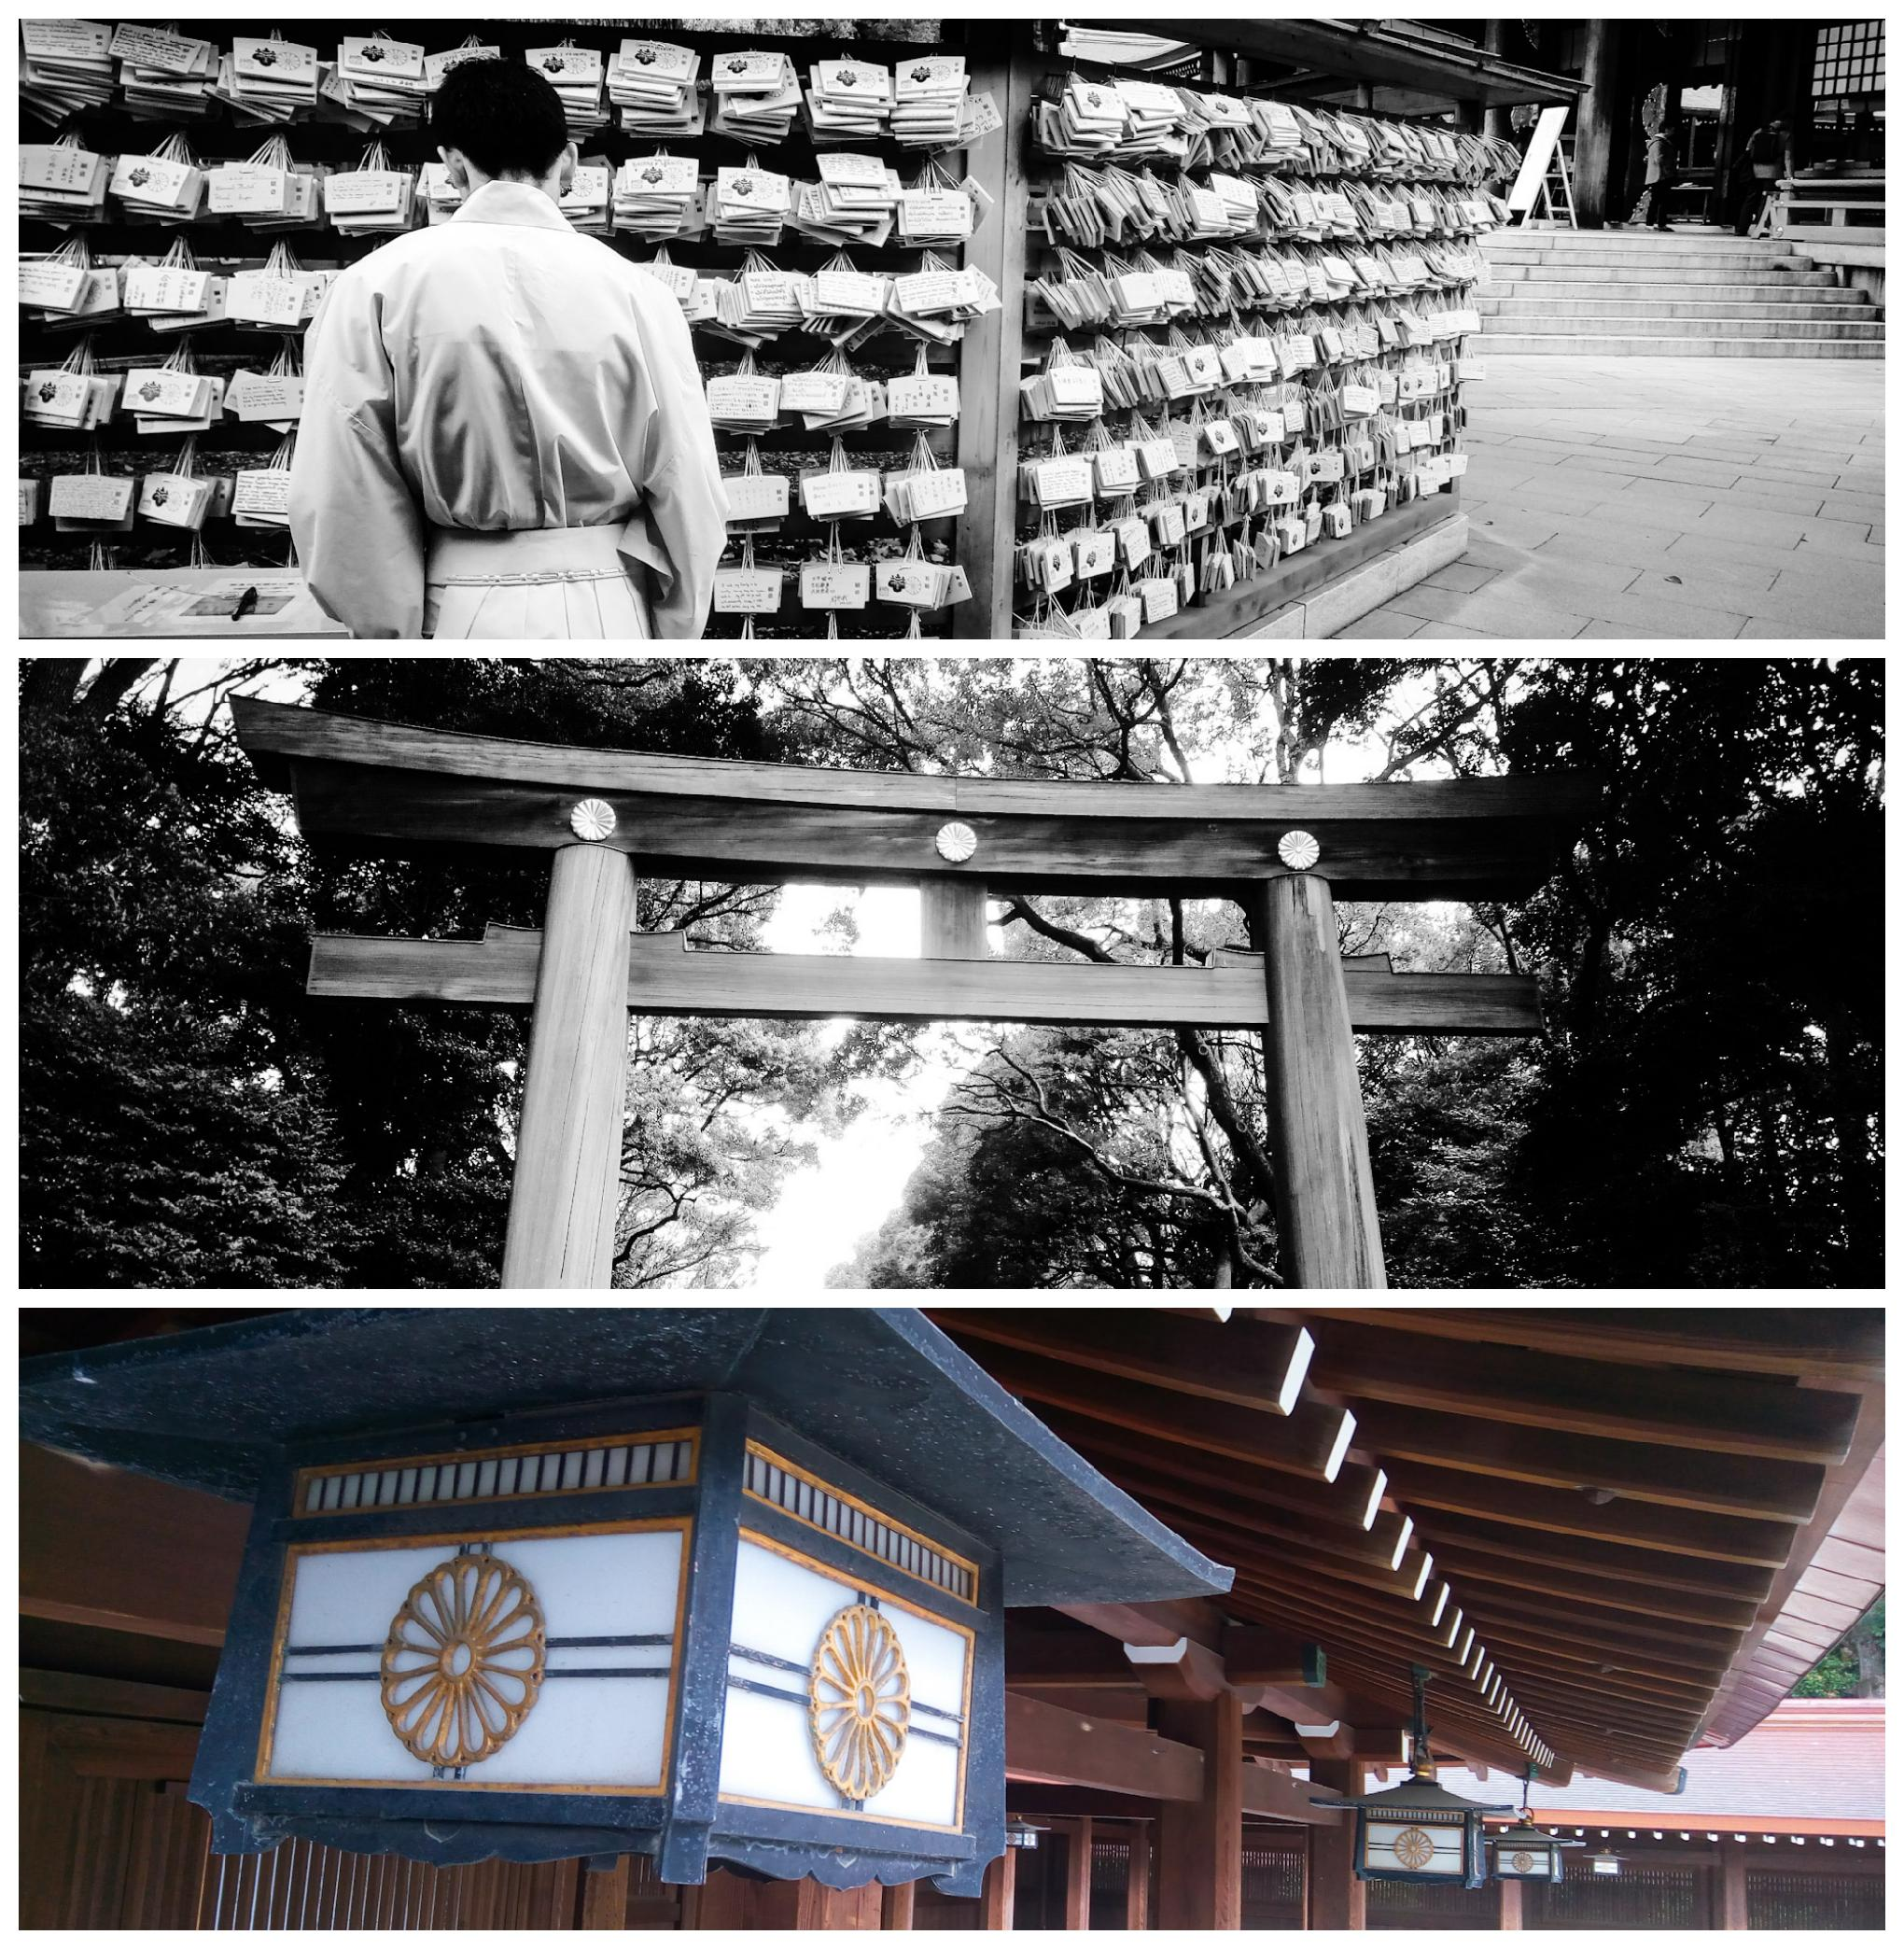 Urban Photos - Shibuya, Tokyo, Japan. 'Meiji Shrine,2.' The shrine is surrounded by a forest, with over 100,000 trees. sketchbookexplorer.com @davidasutton @sketchbookexplorer Facebook.com/davidanthonysutton #japan #tokyo #taito #meijishrine #travel #travelblog #photography #cheeryblossom #cherryblossomseason